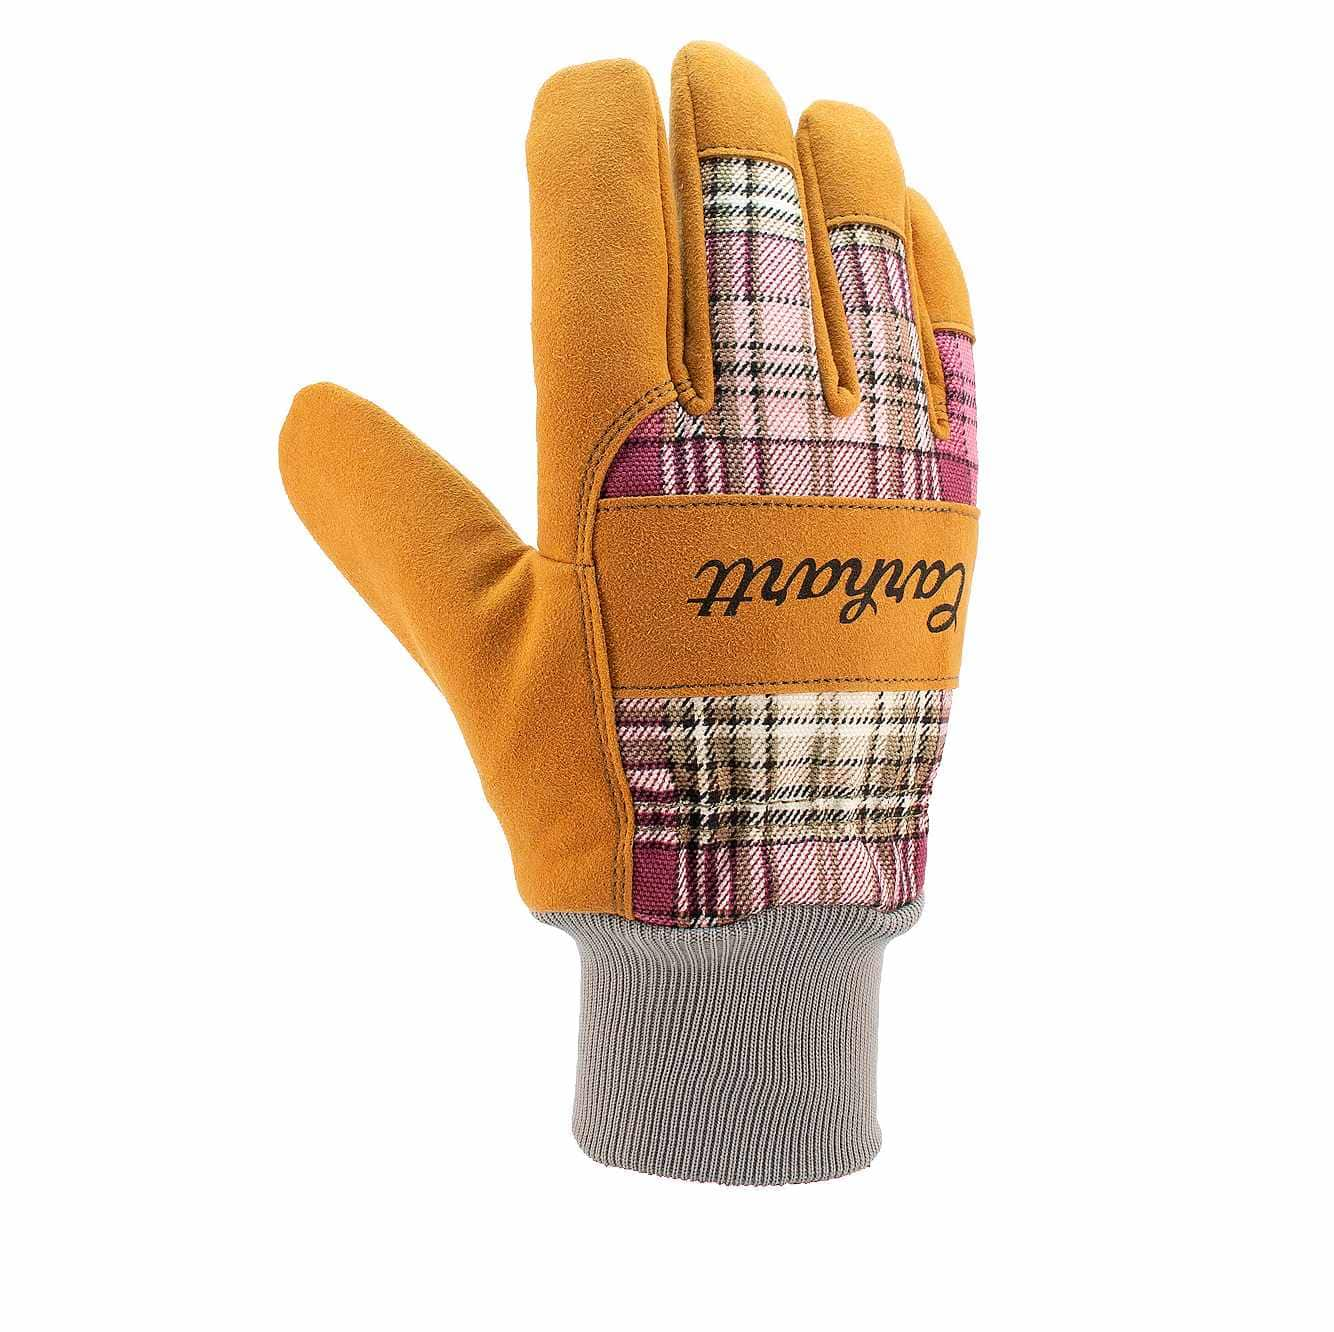 Picture of Synthetic Suede Knit-Cuff Work Glove in Wild Rose Plaid